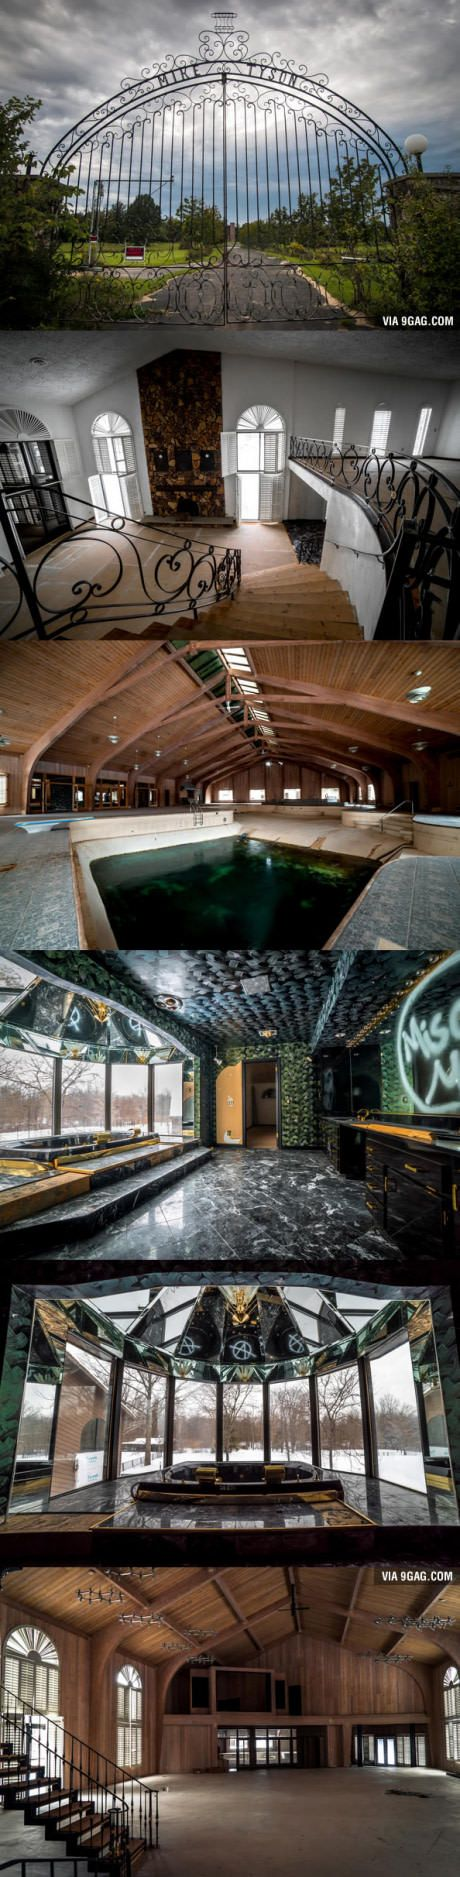 Mike Tyson's abandoned house